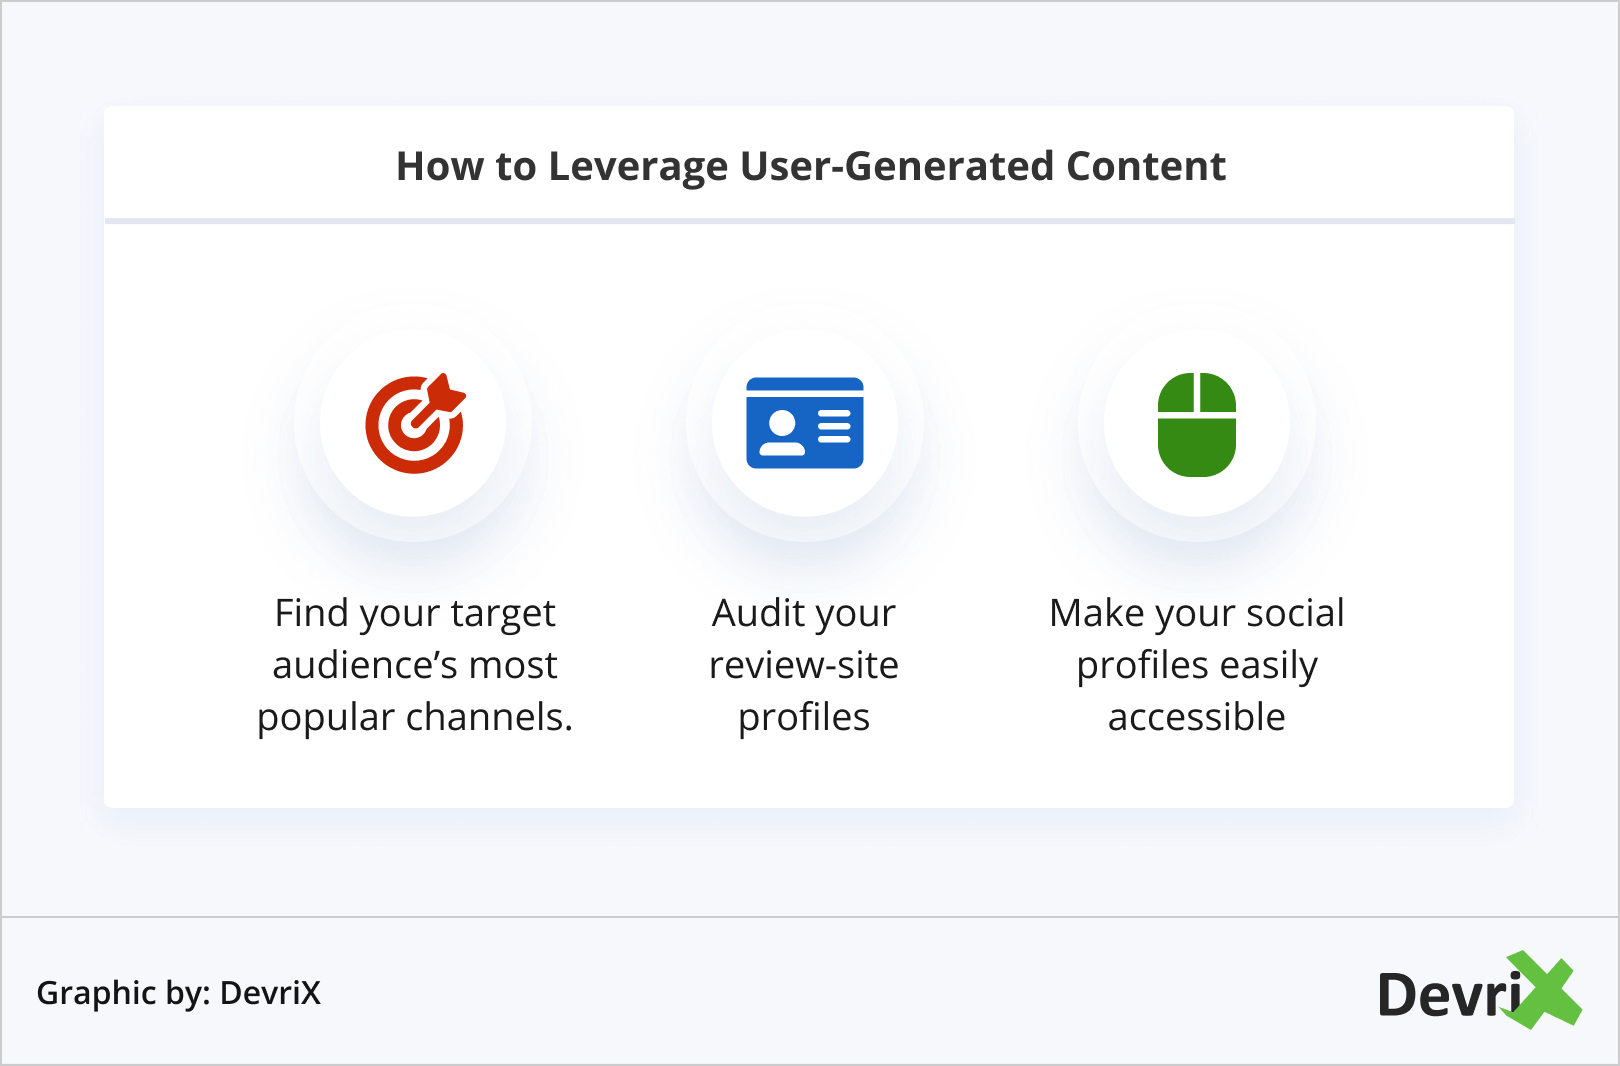 How to Leverage User-Generated Content